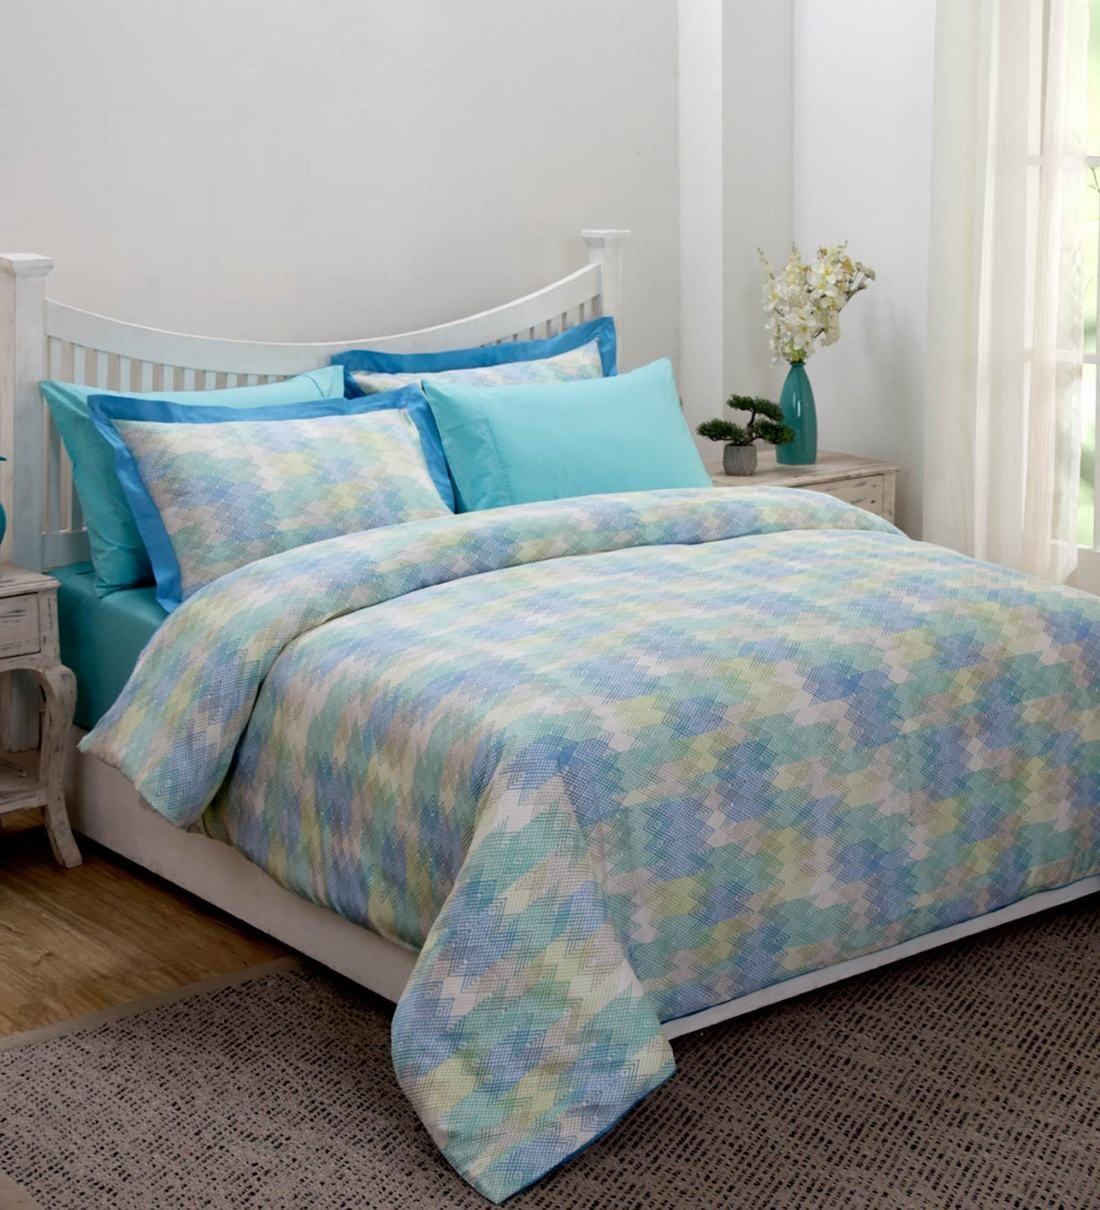 Buy Modern Aesthetic Blue Cotton 108x90 Double Bed Duvet Cover By Maspar Online Double Bed Duvet Covers Duvet Covers Furnishings Pepperfry Product